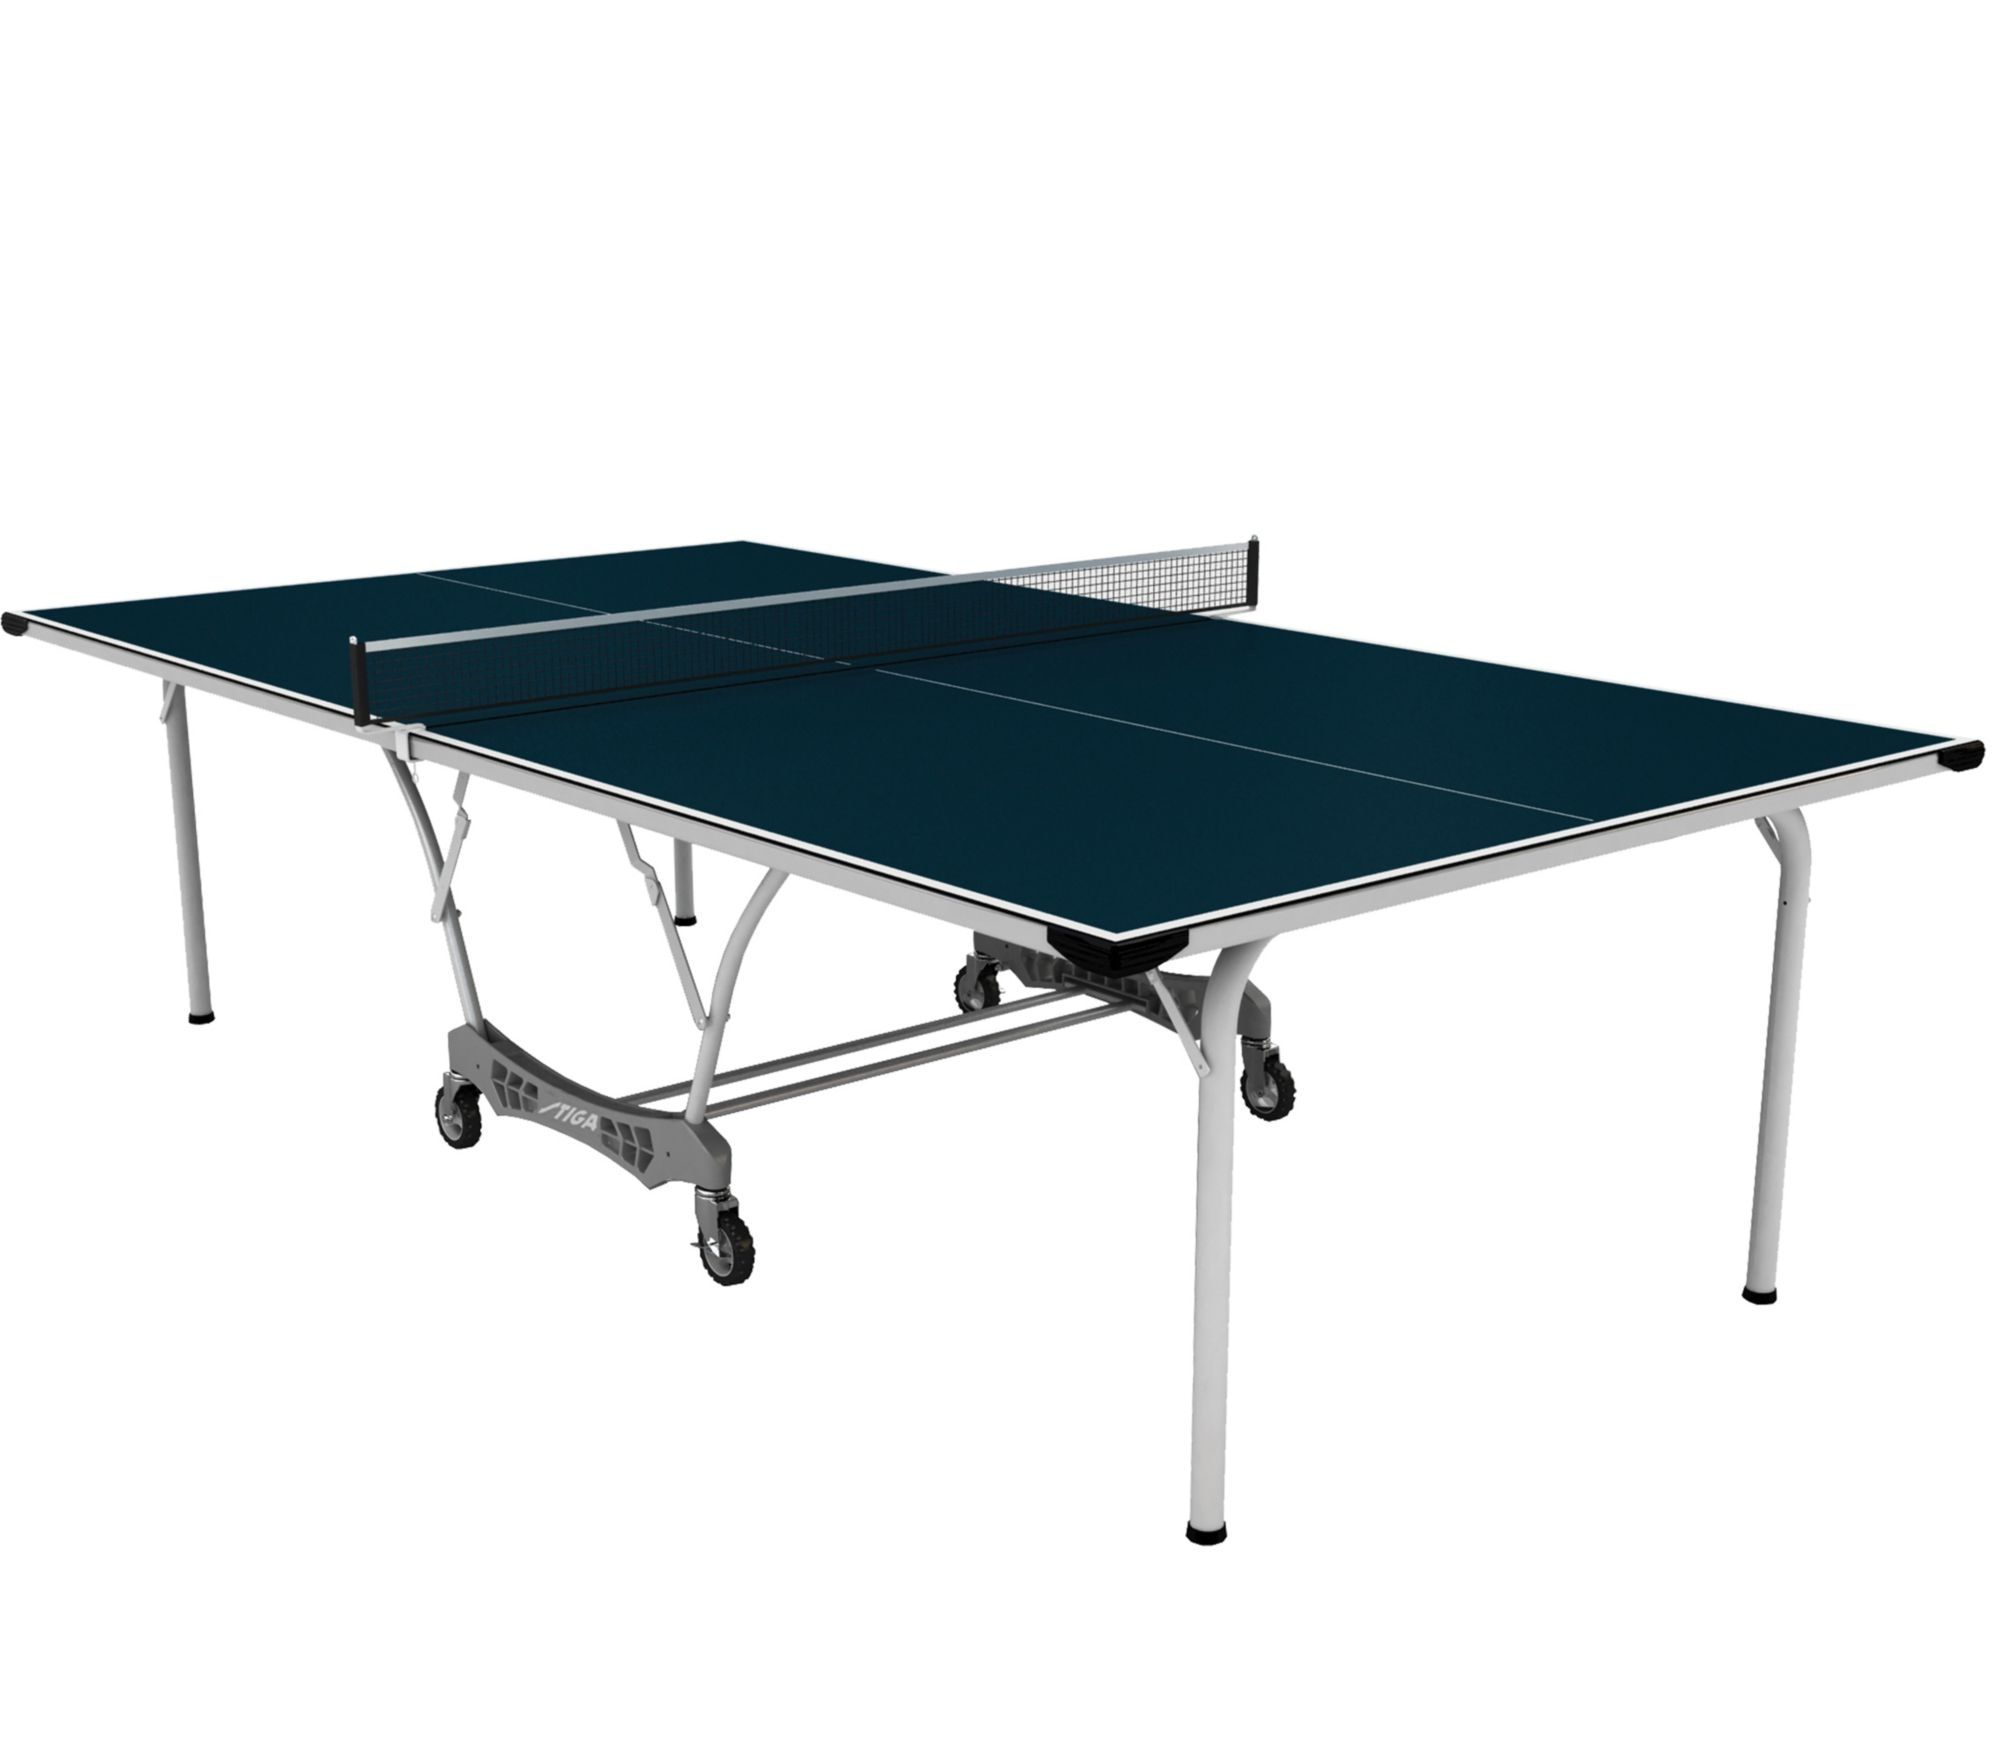 Stiga Coronado Outdoor Table Tennis Table Blue Outdoor Table Tennis Table Outdoor Table Covers Outdoor Tables